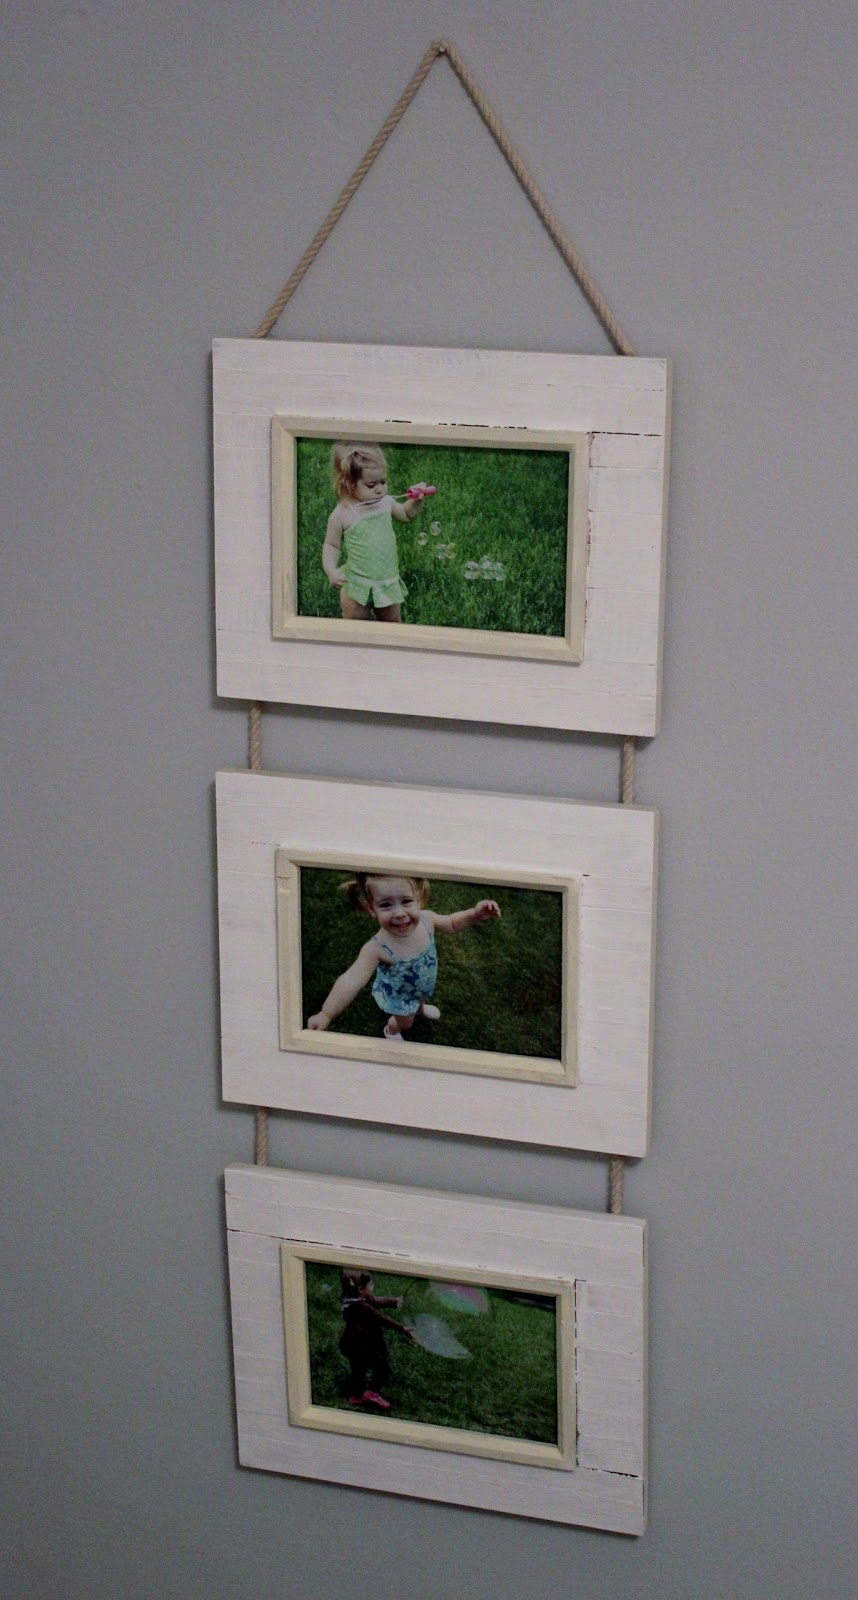 The Princess of Projects: Dollar store hanging frame!